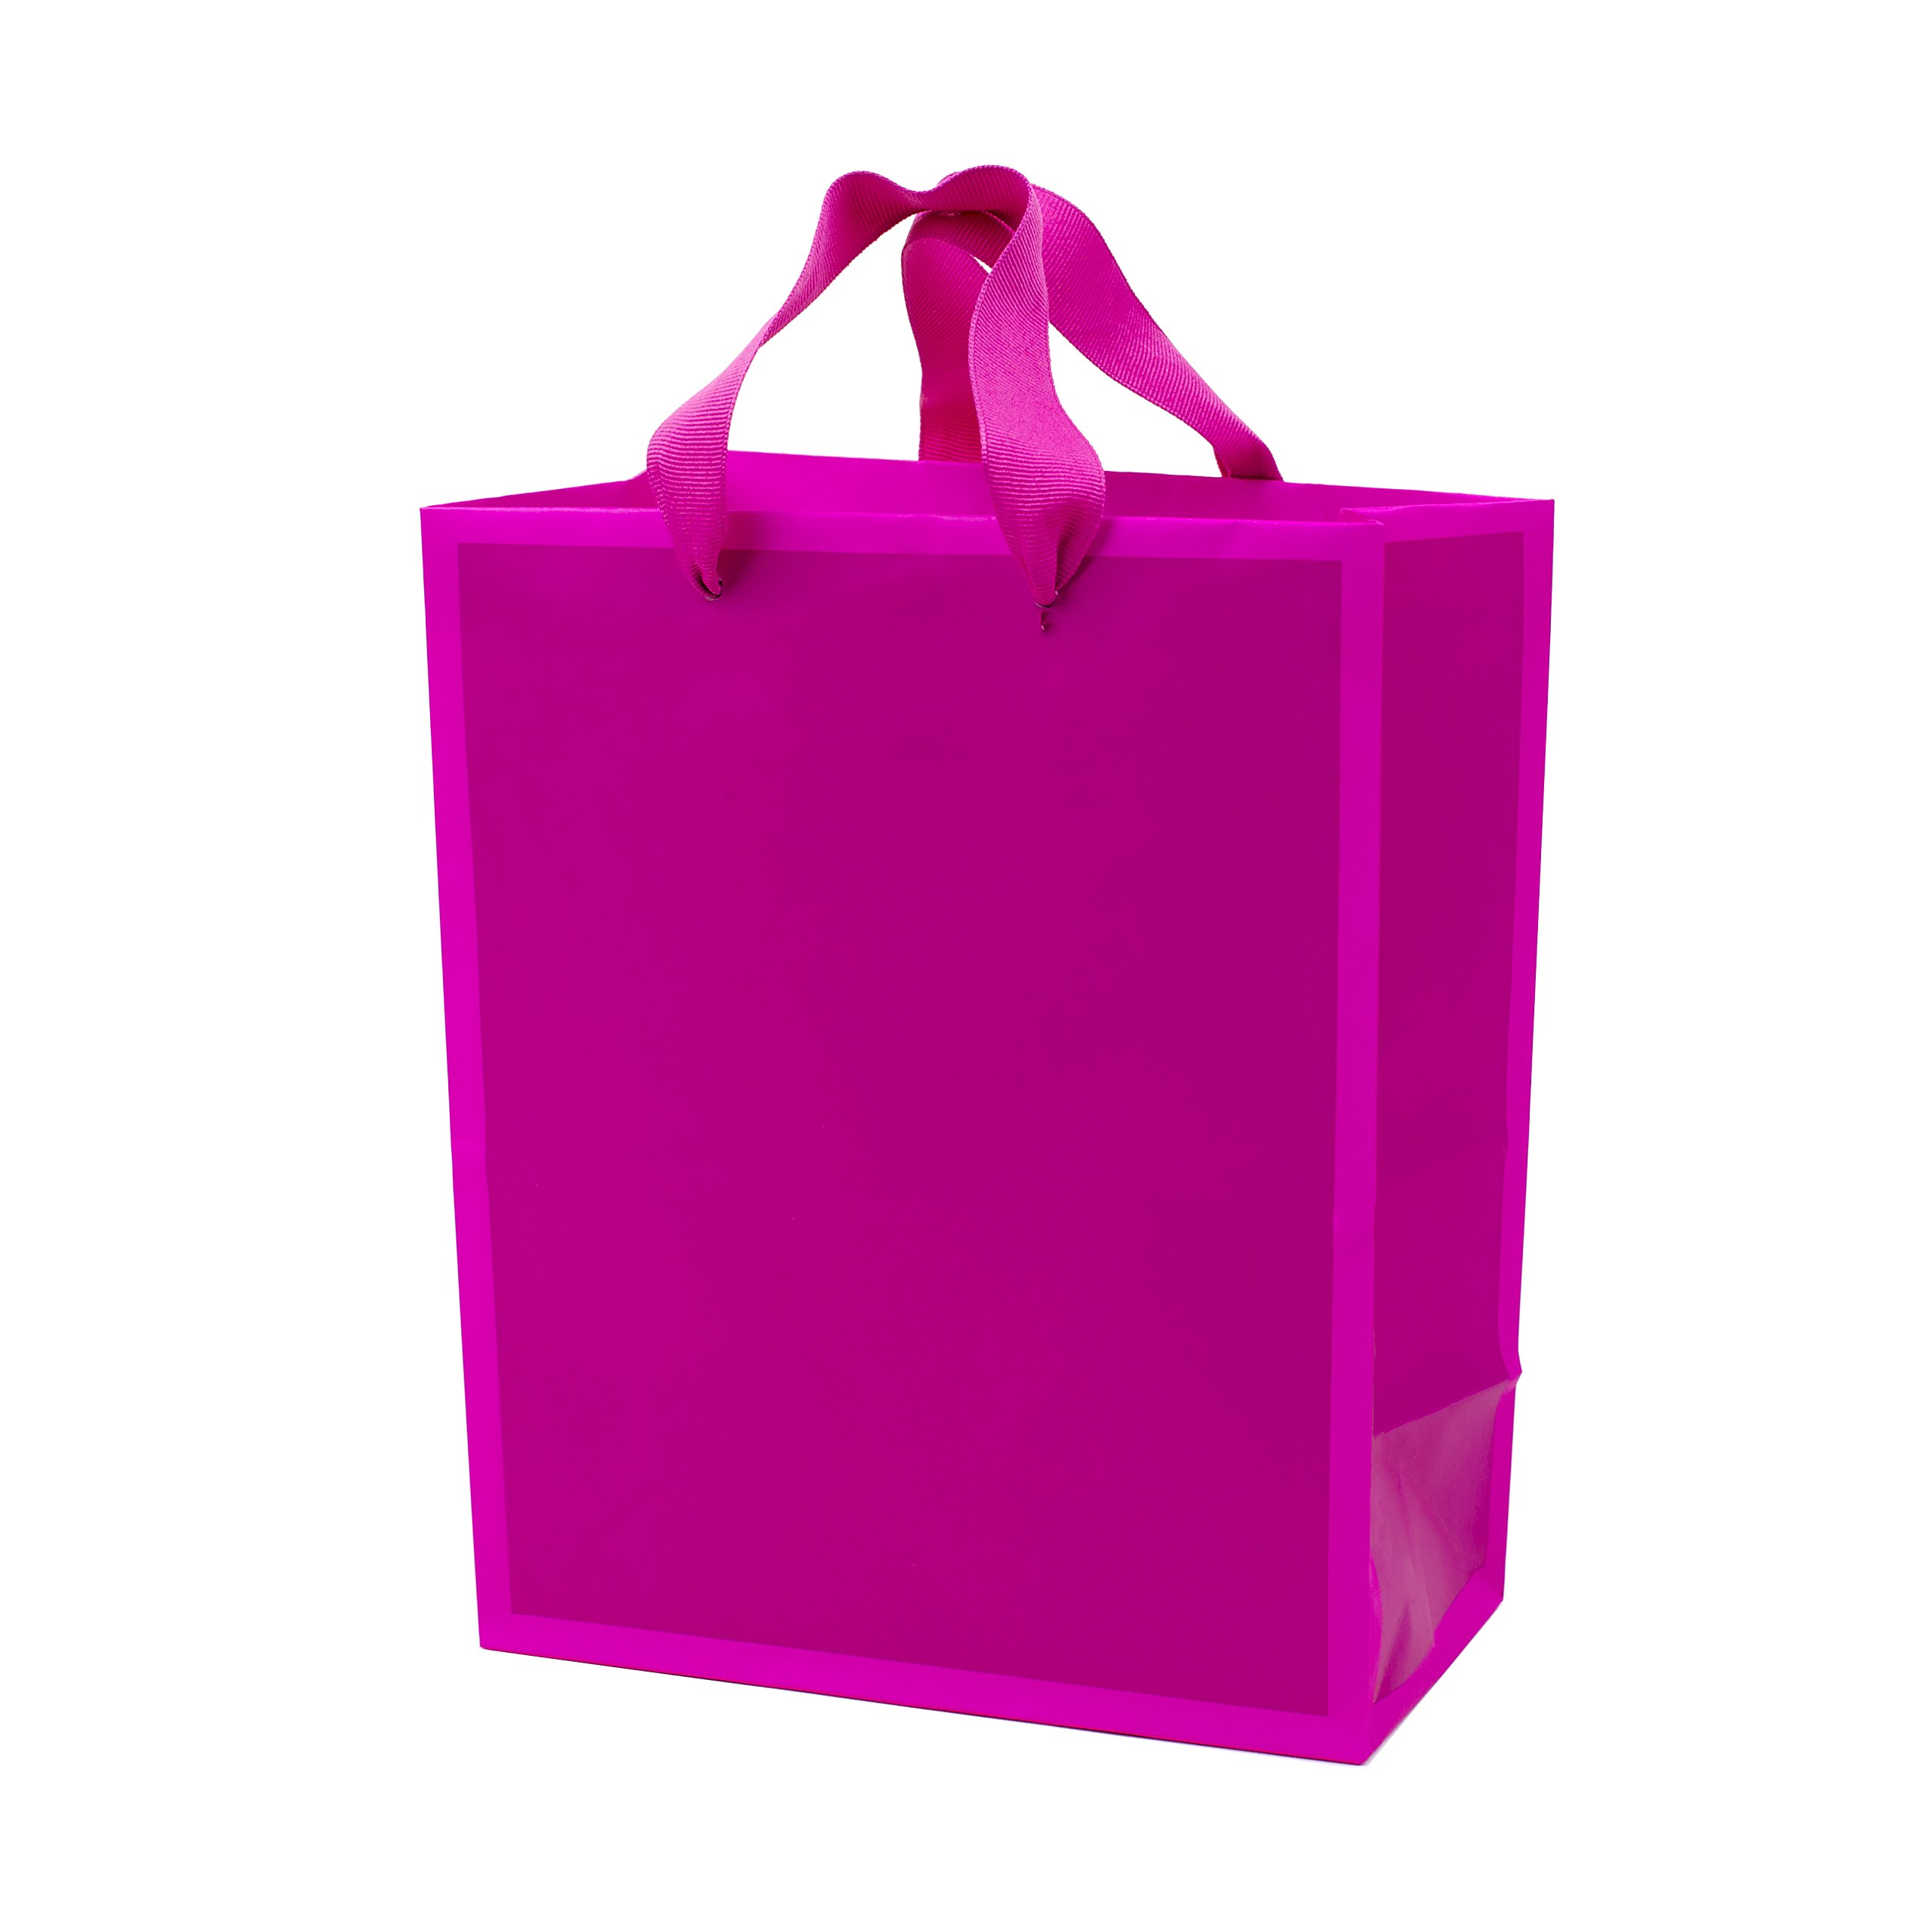 """Hallmark 9"""" Medium Gift Bag (Hot Pink) for Birthdays, Baby Showers, Bridal Showers, Easter, Mothers Day or Any Occasion"""